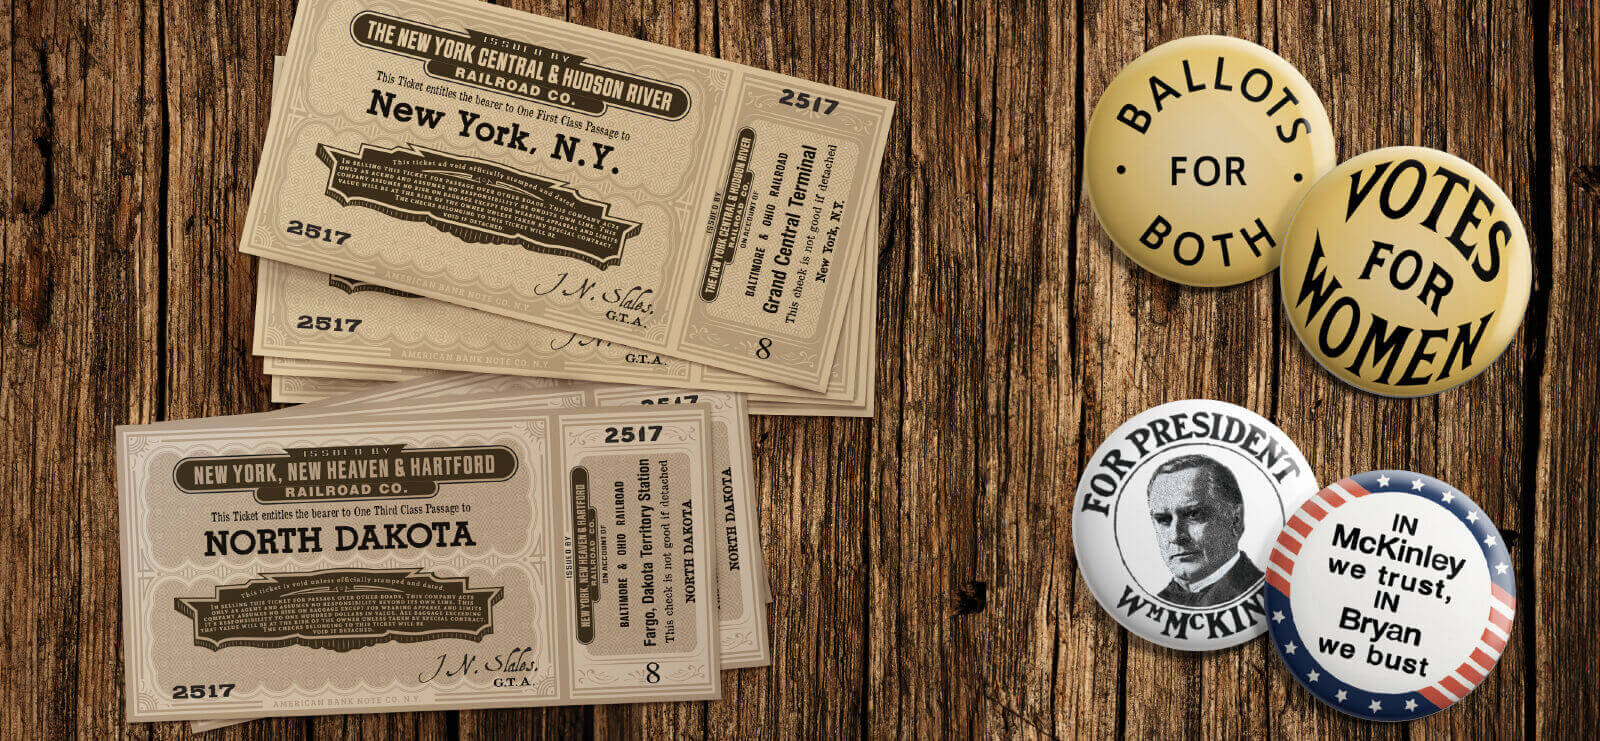 The Alienist - Train tickets and political pins